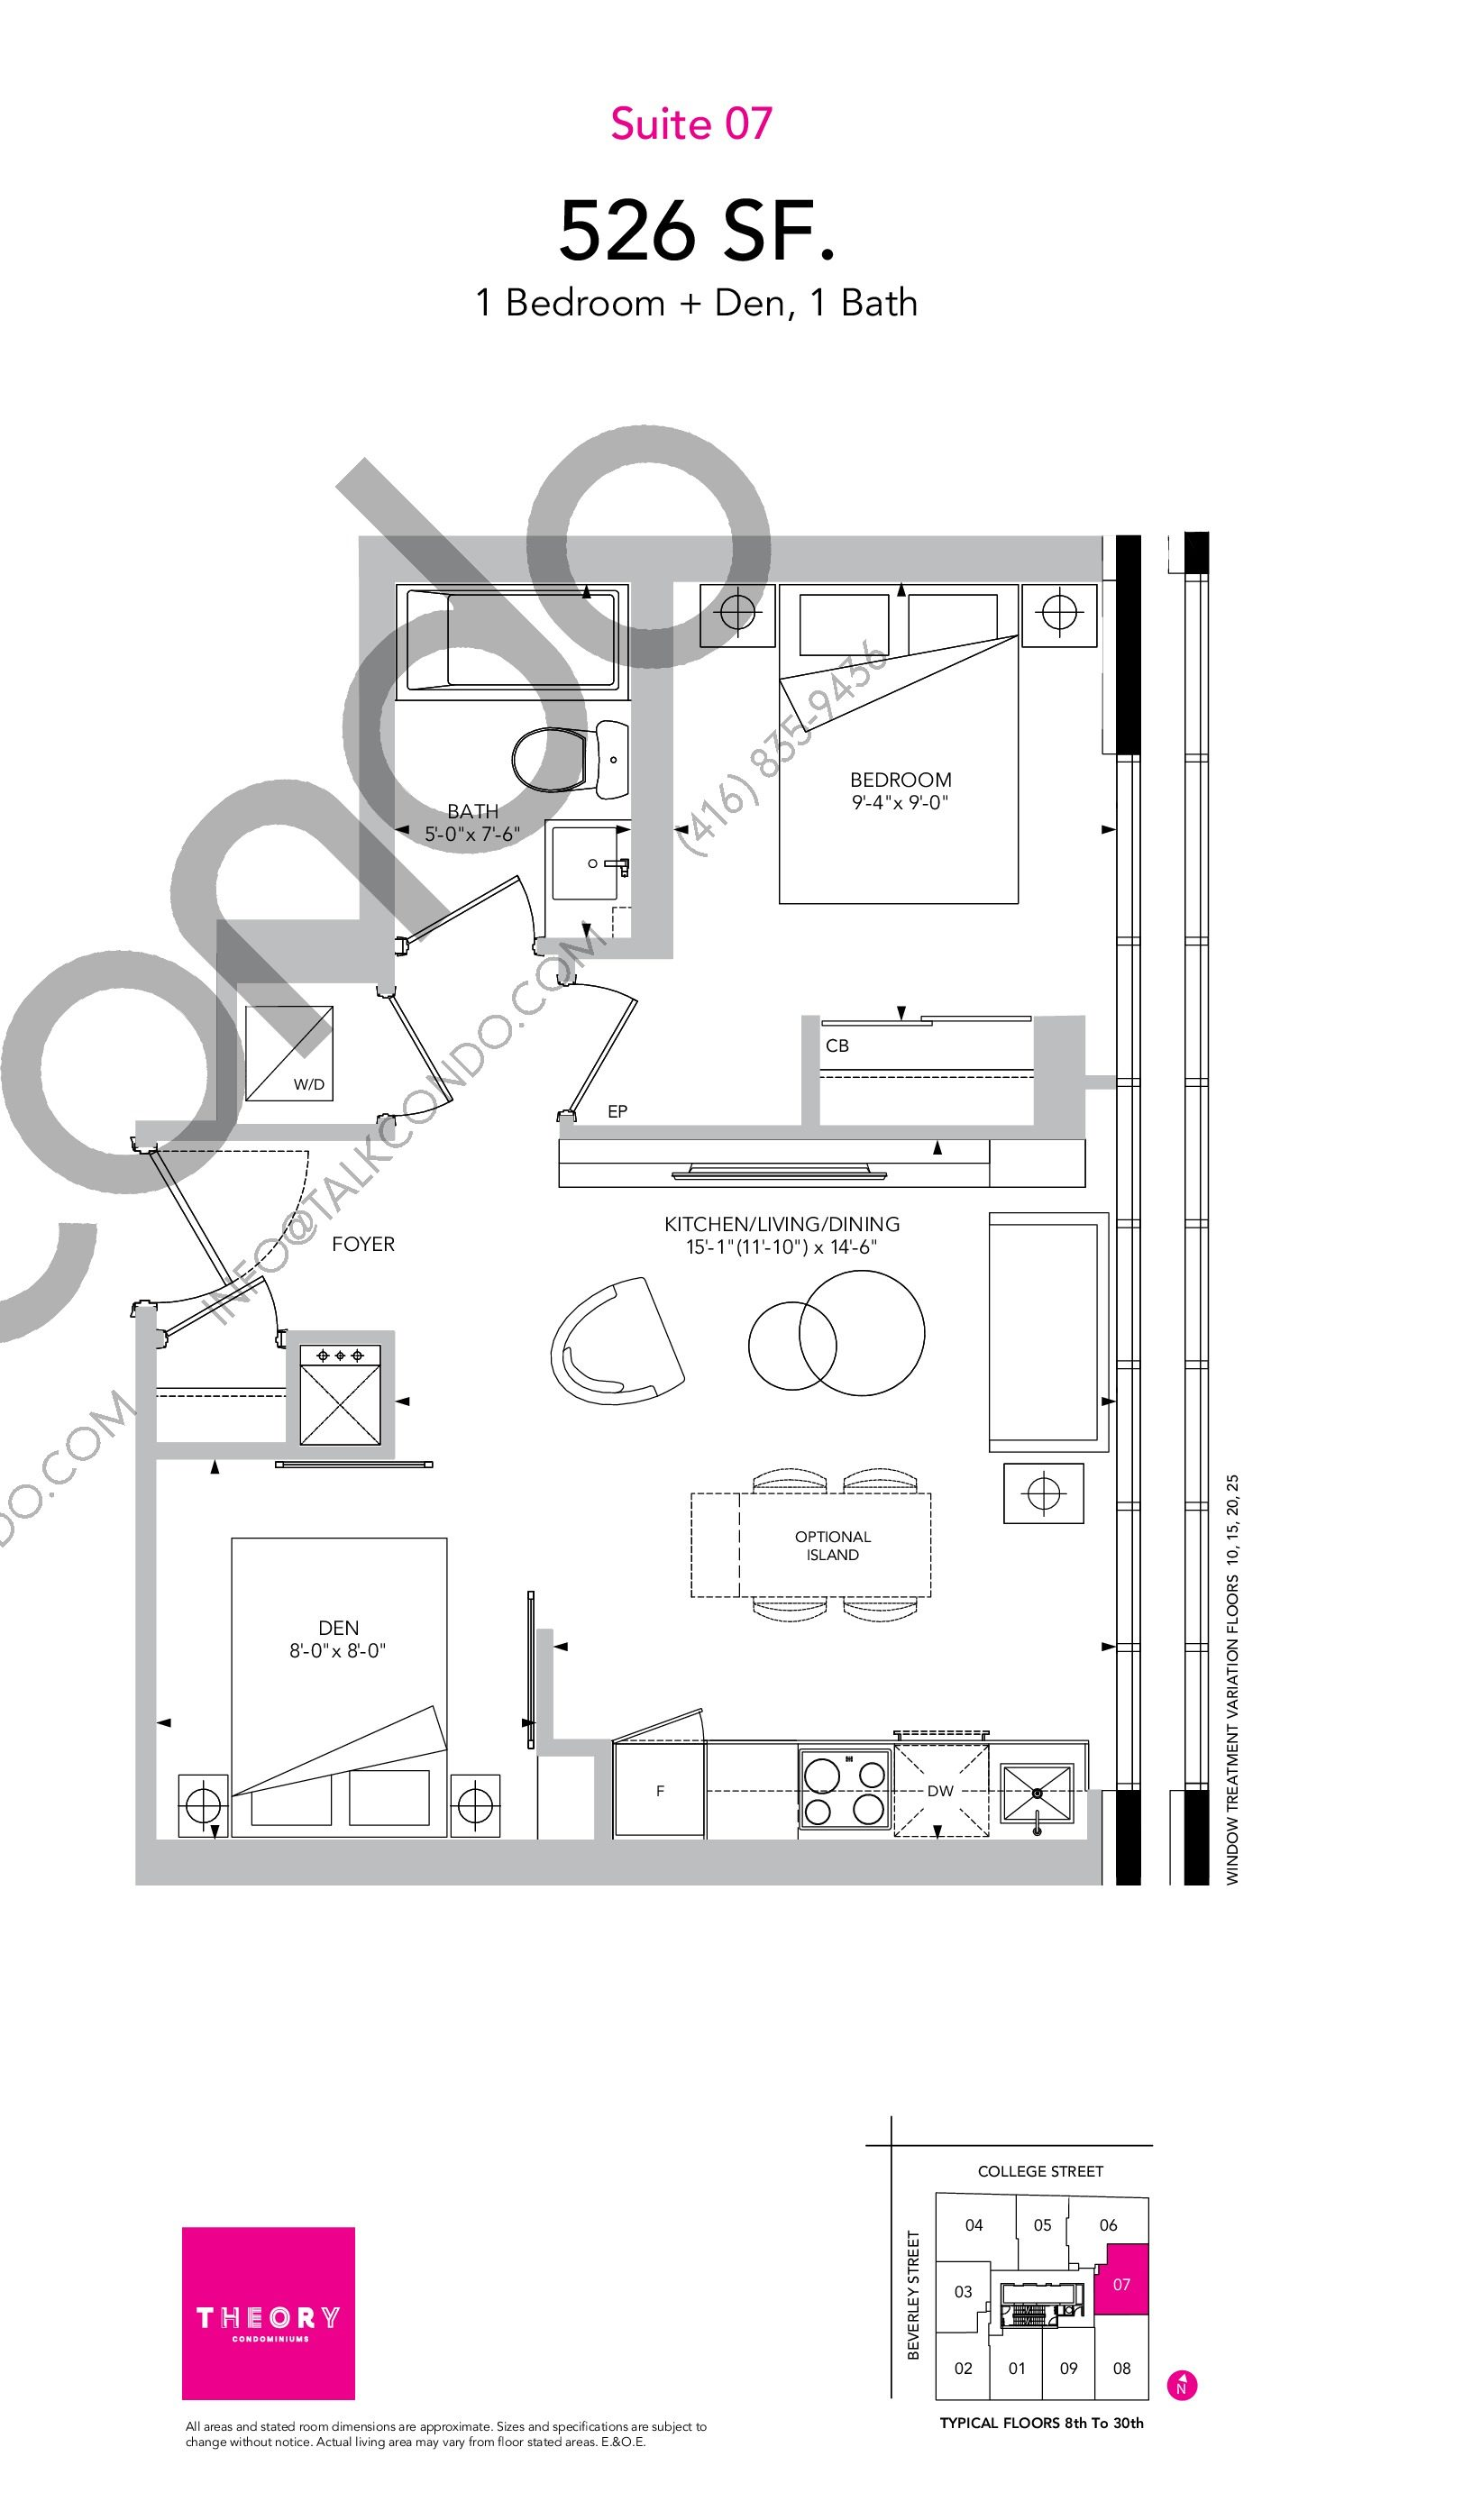 Suite 07 Floor Plan at Theory Condos - 526 sq.ft